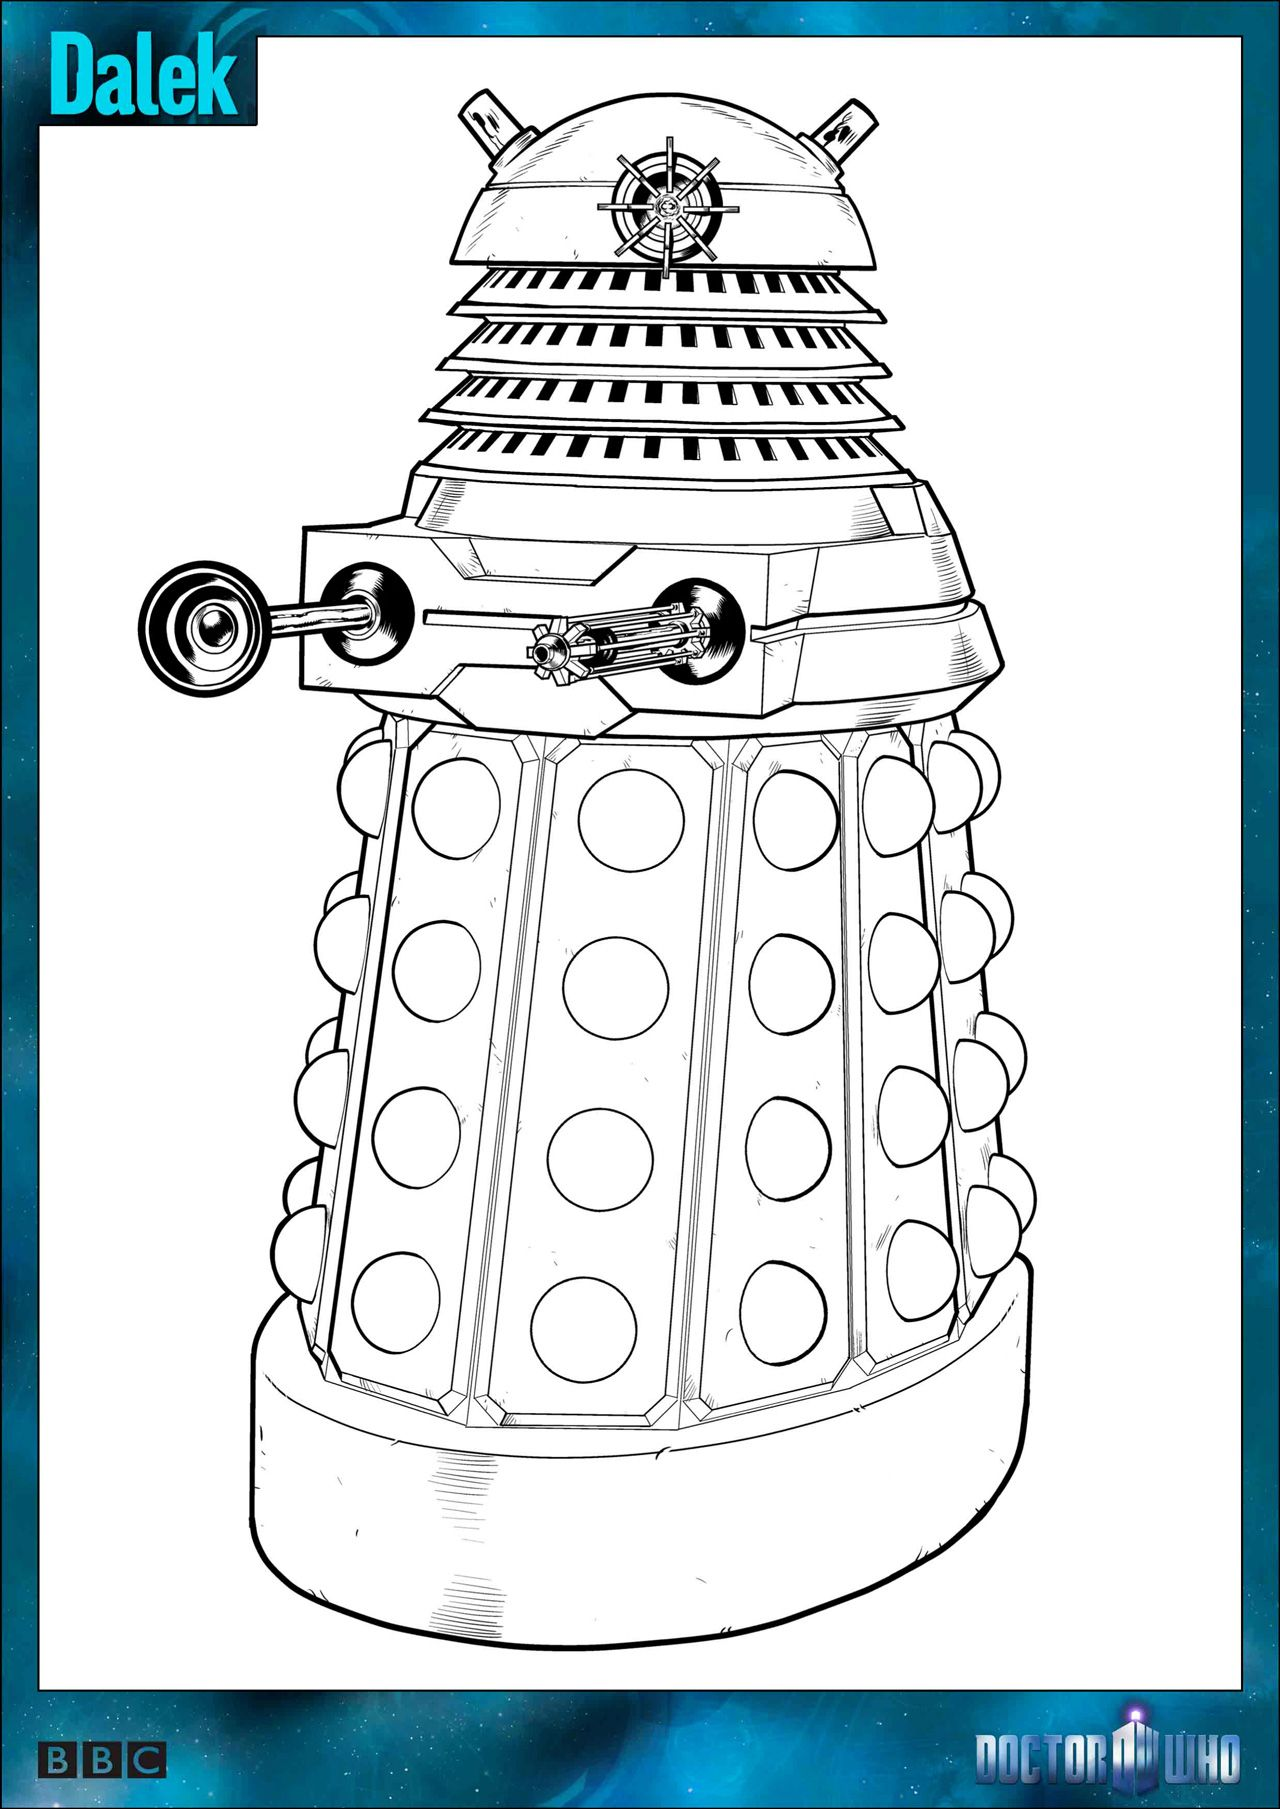 Official Doctor Who Tumblr Doctor Who Colouring In Packs arent